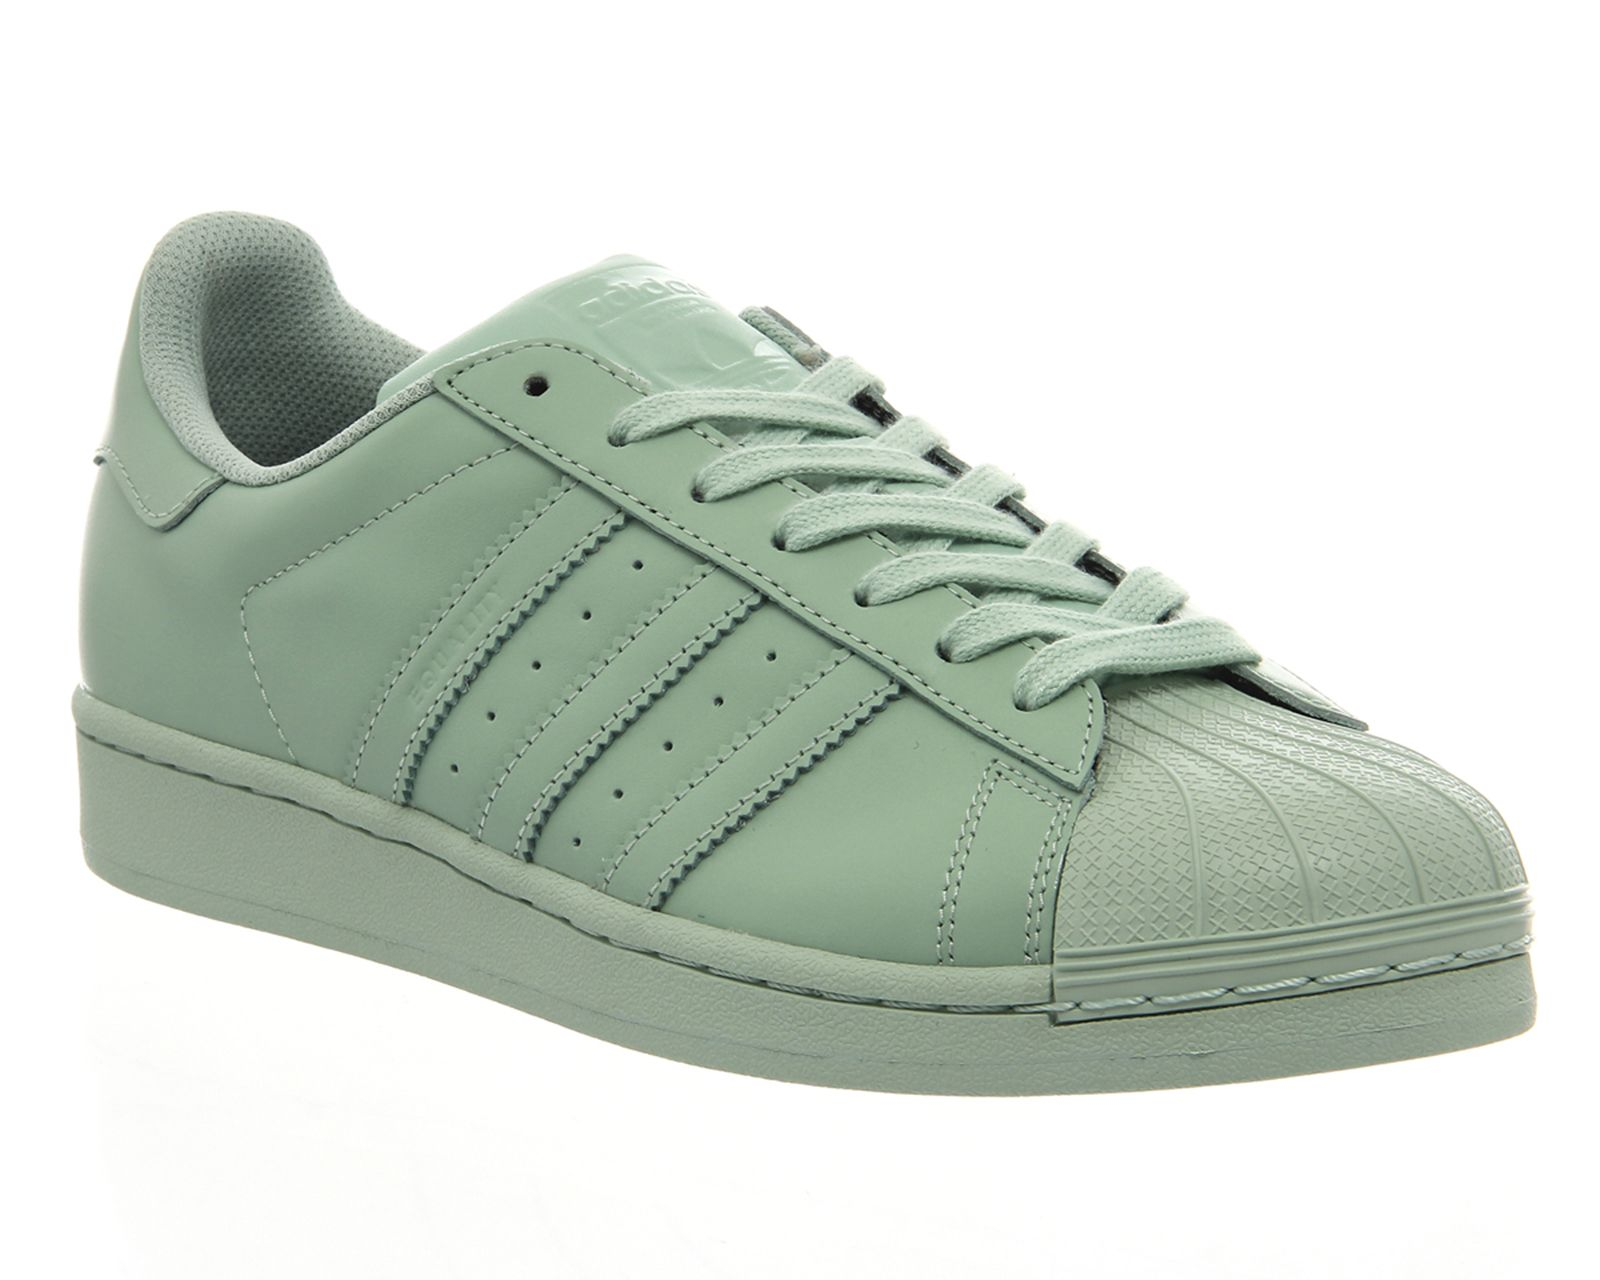 adidas superstar womens mint green